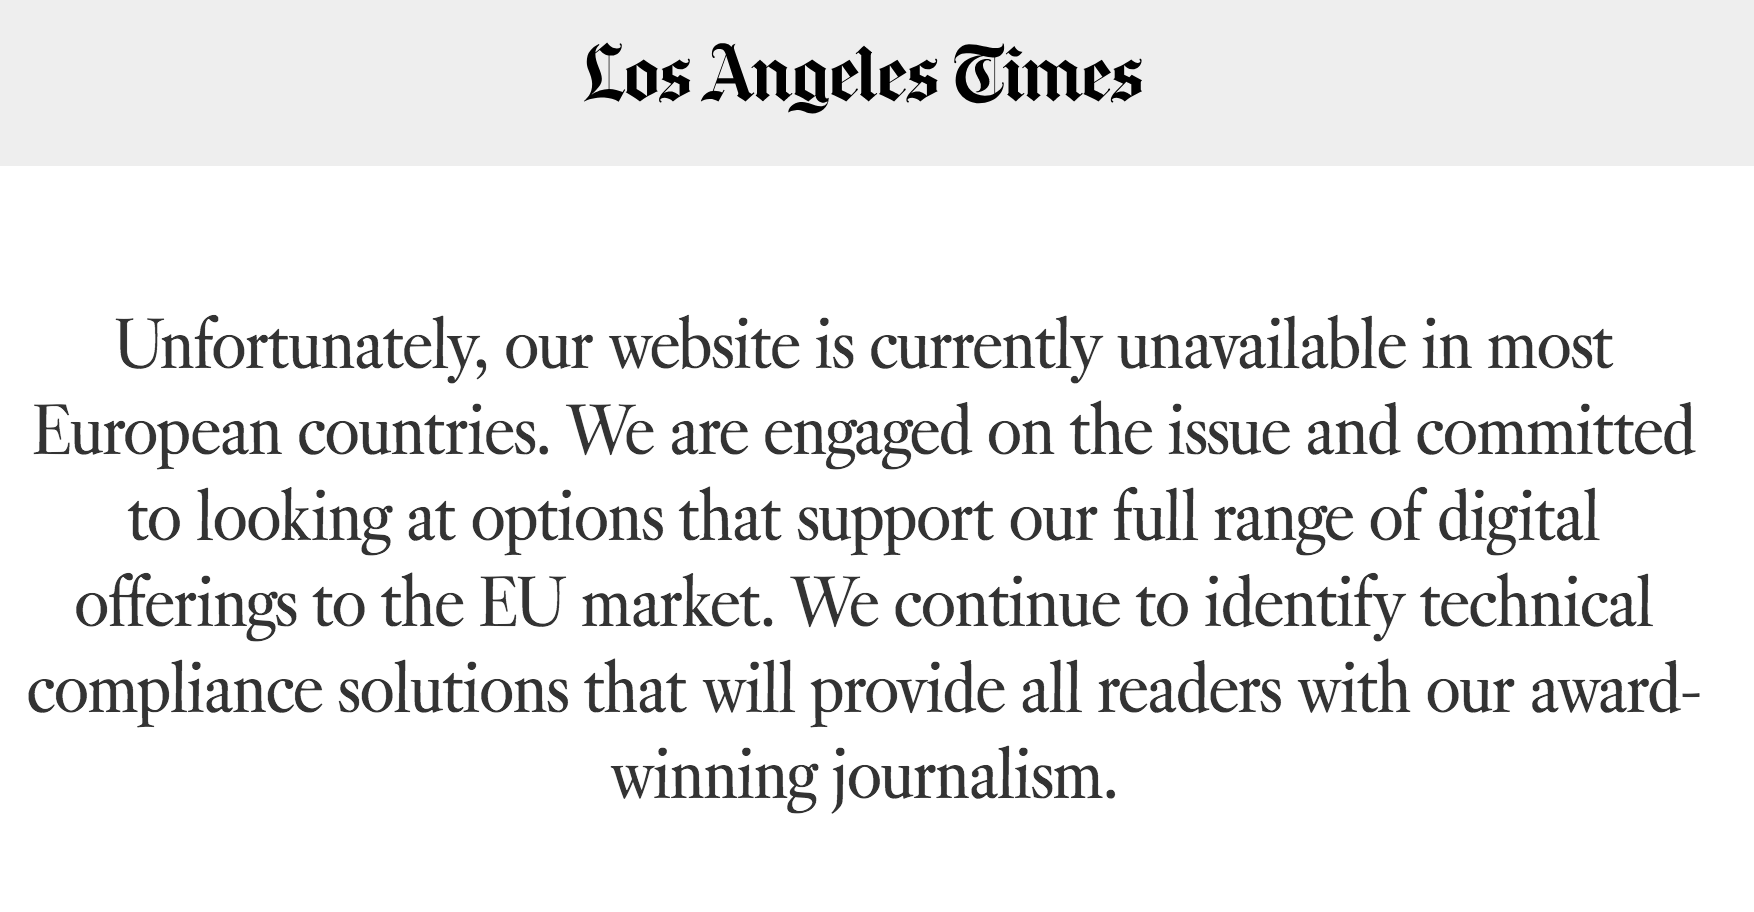 More than 1,000 U S  news sites are still unavailable in